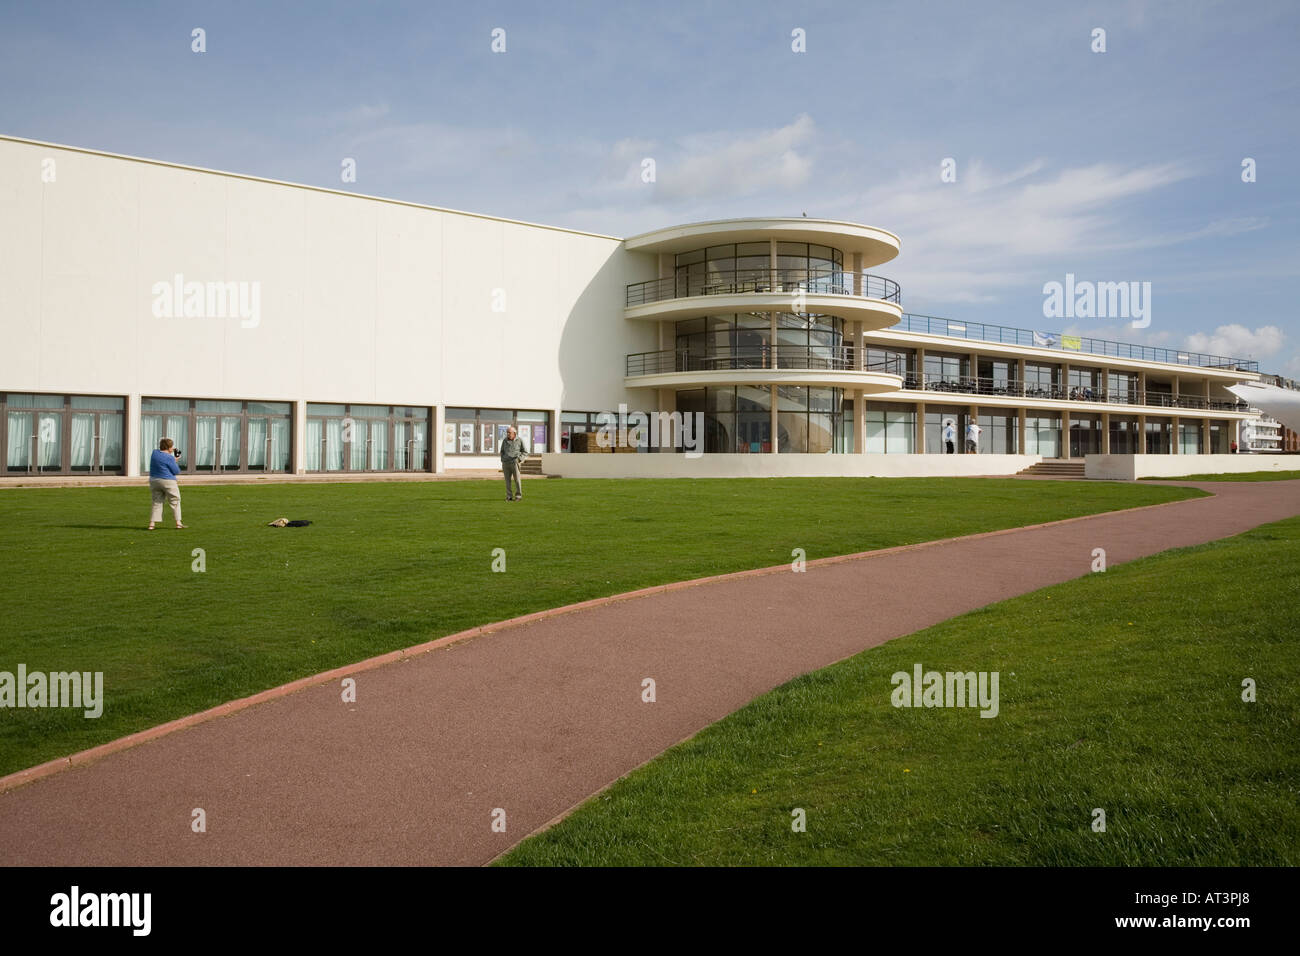 Exterior view of Bexhill Pavilion, UK with photographers - Stock Image